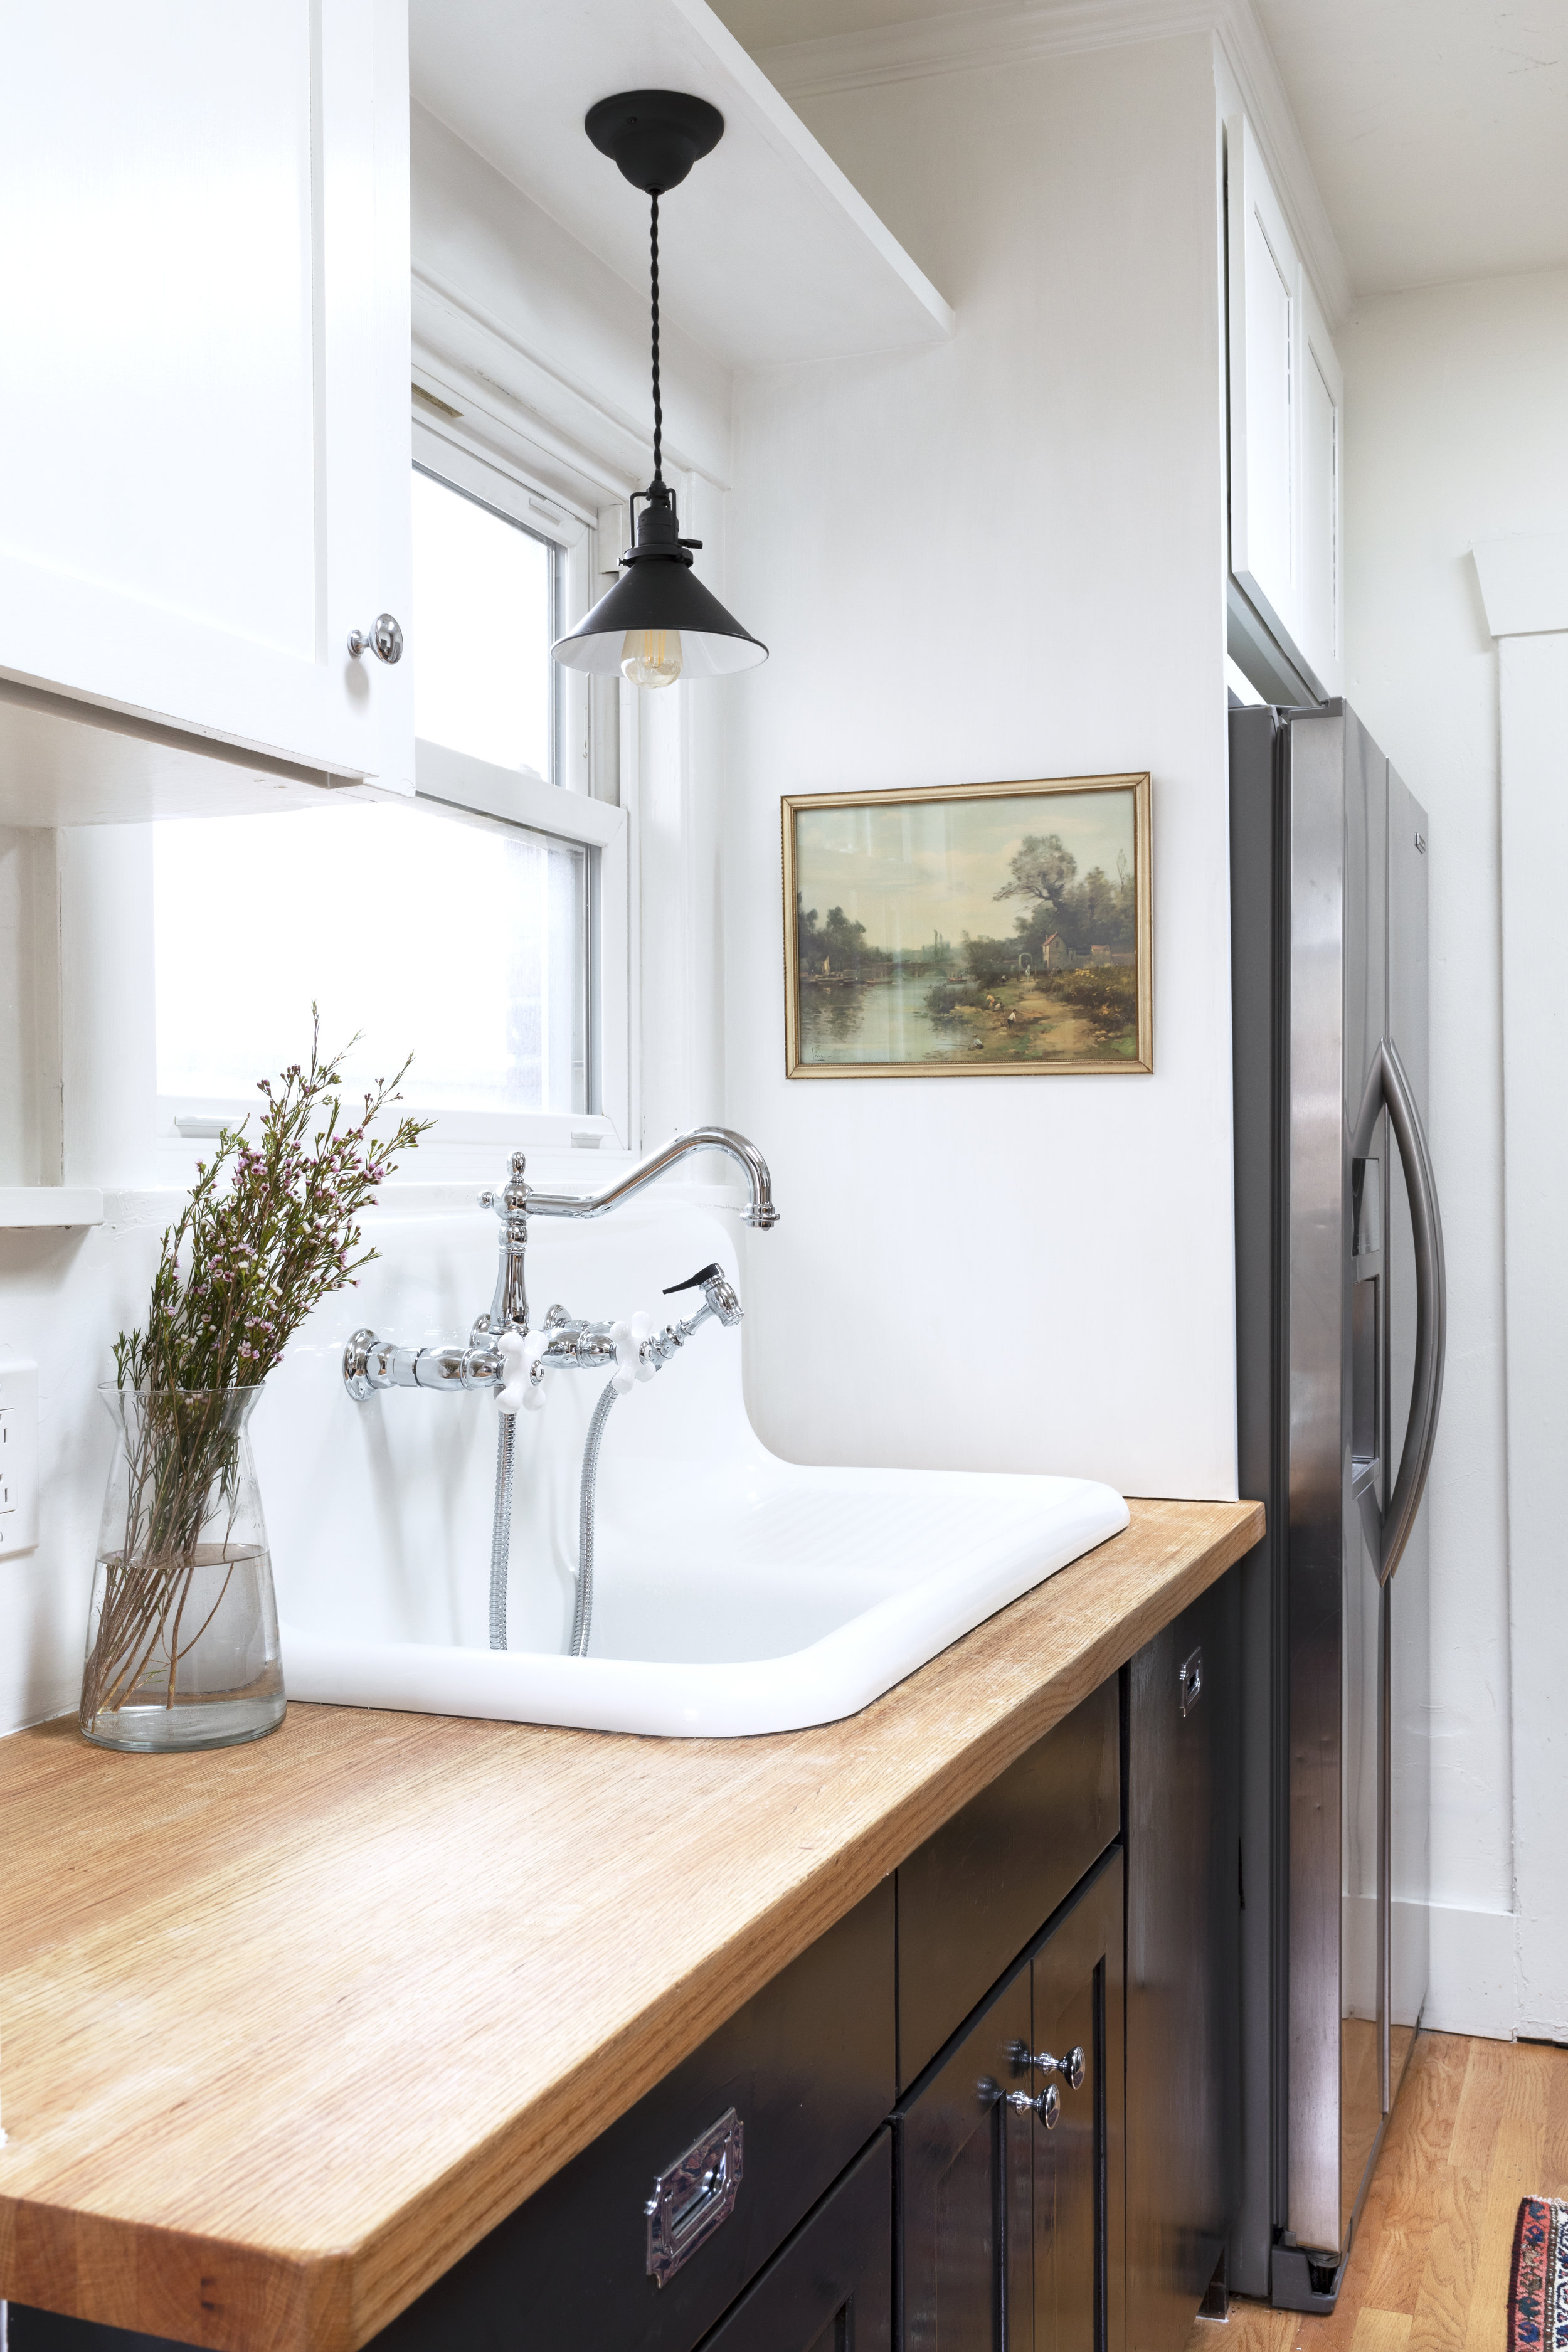 Replica Vintage Sink and vintage landscape art at the Dexter House Kitchen // the Grit and Polish